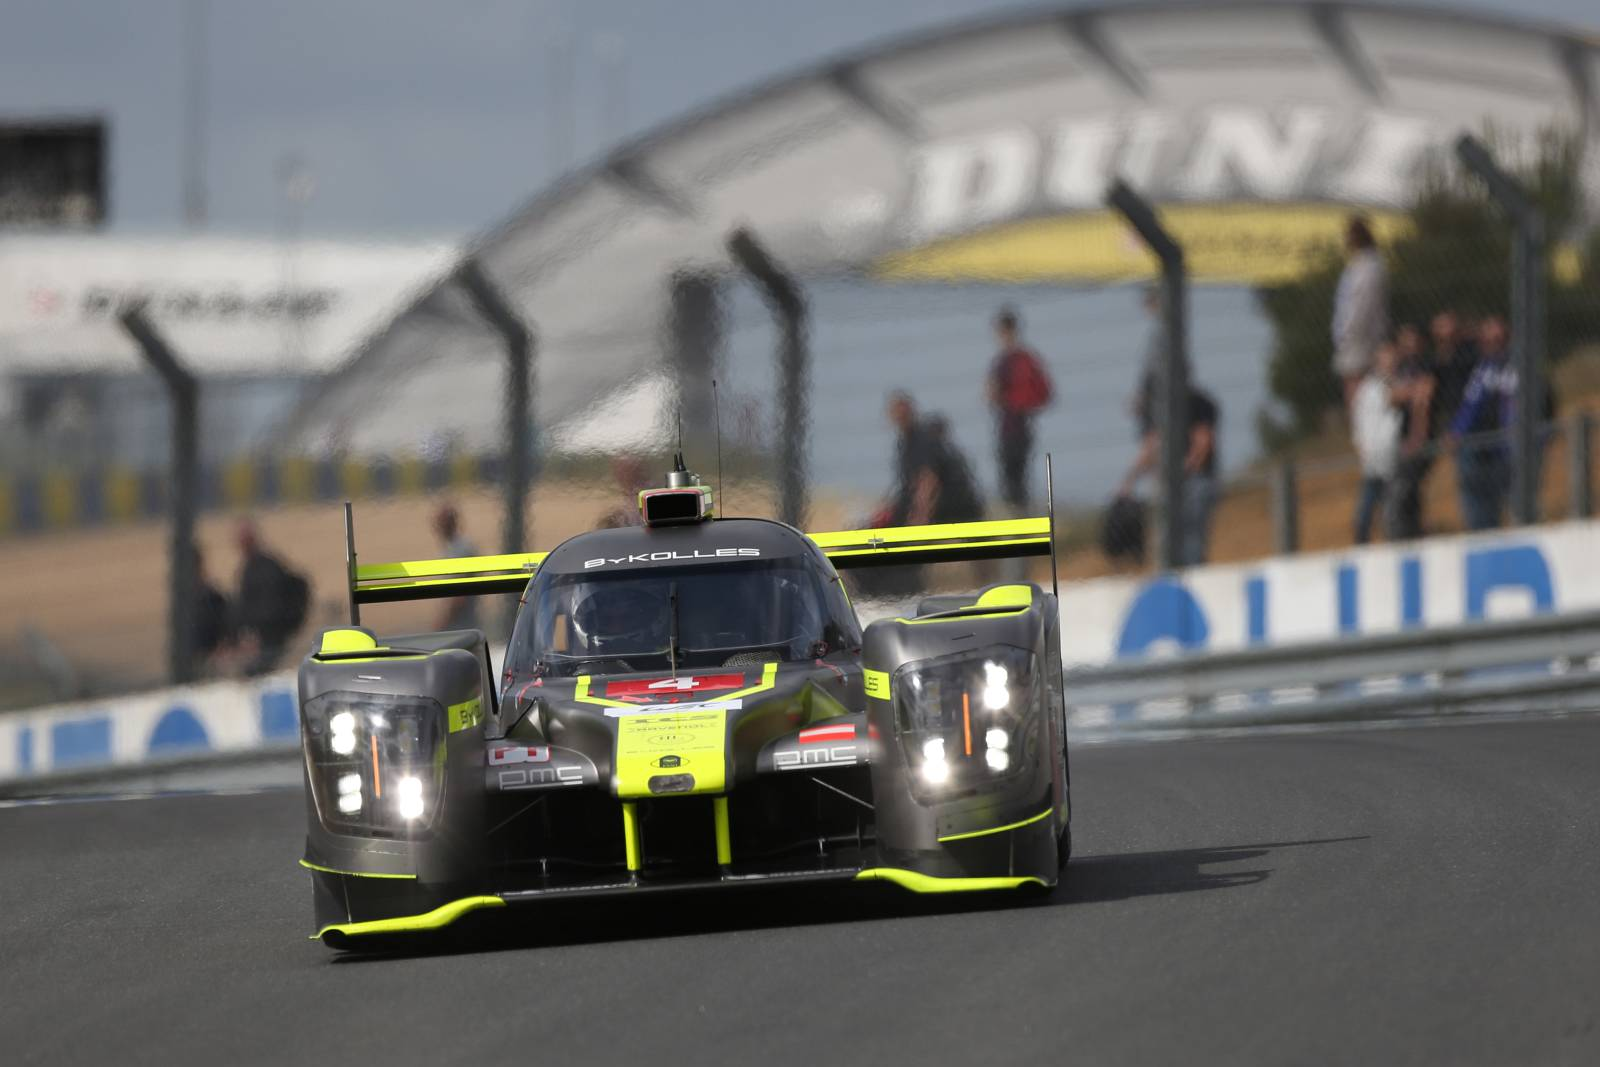 byKOLLES-racing-WEC-test-le-mans-2017-008